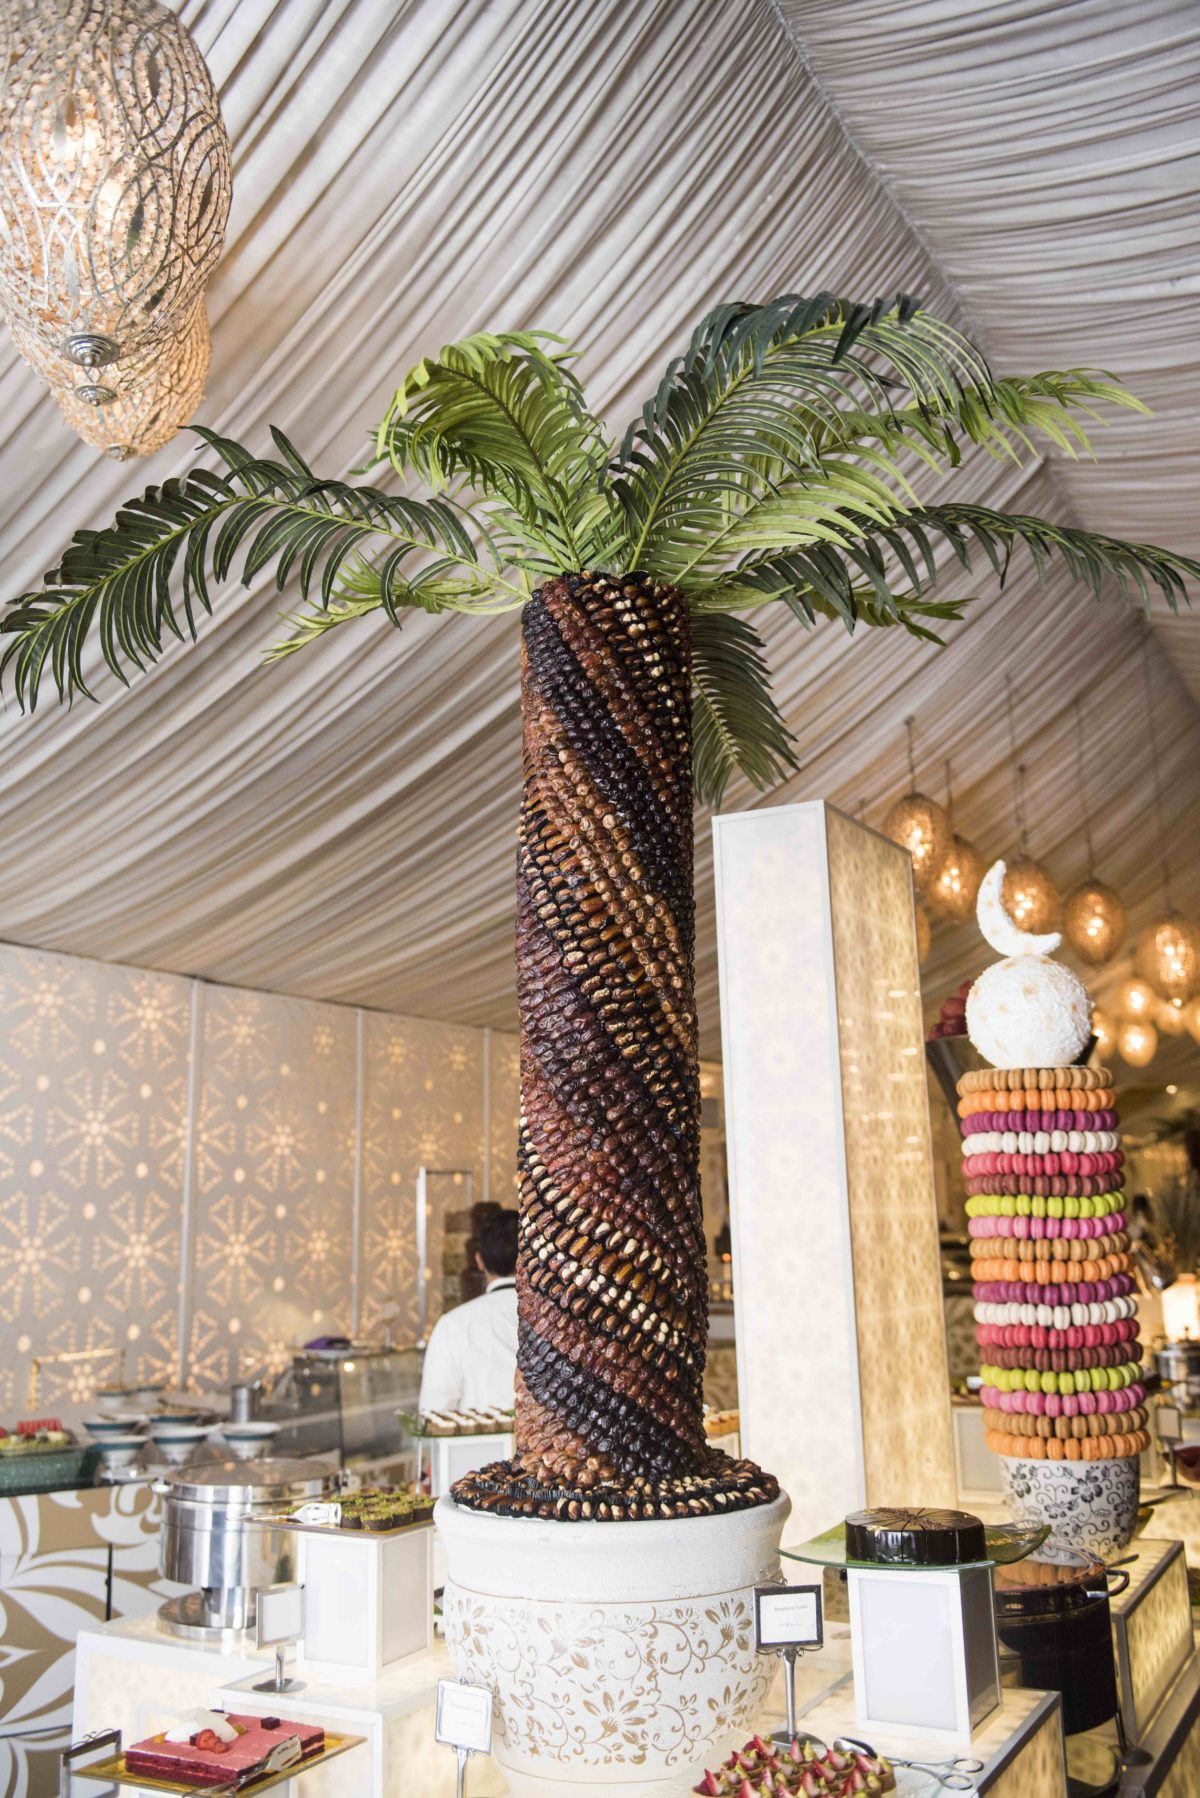 Attend Dubai's Ultimate Iftar Experience this Ramadan at the Atlantis The Palm's Asateer Tent   The Luxe Diary